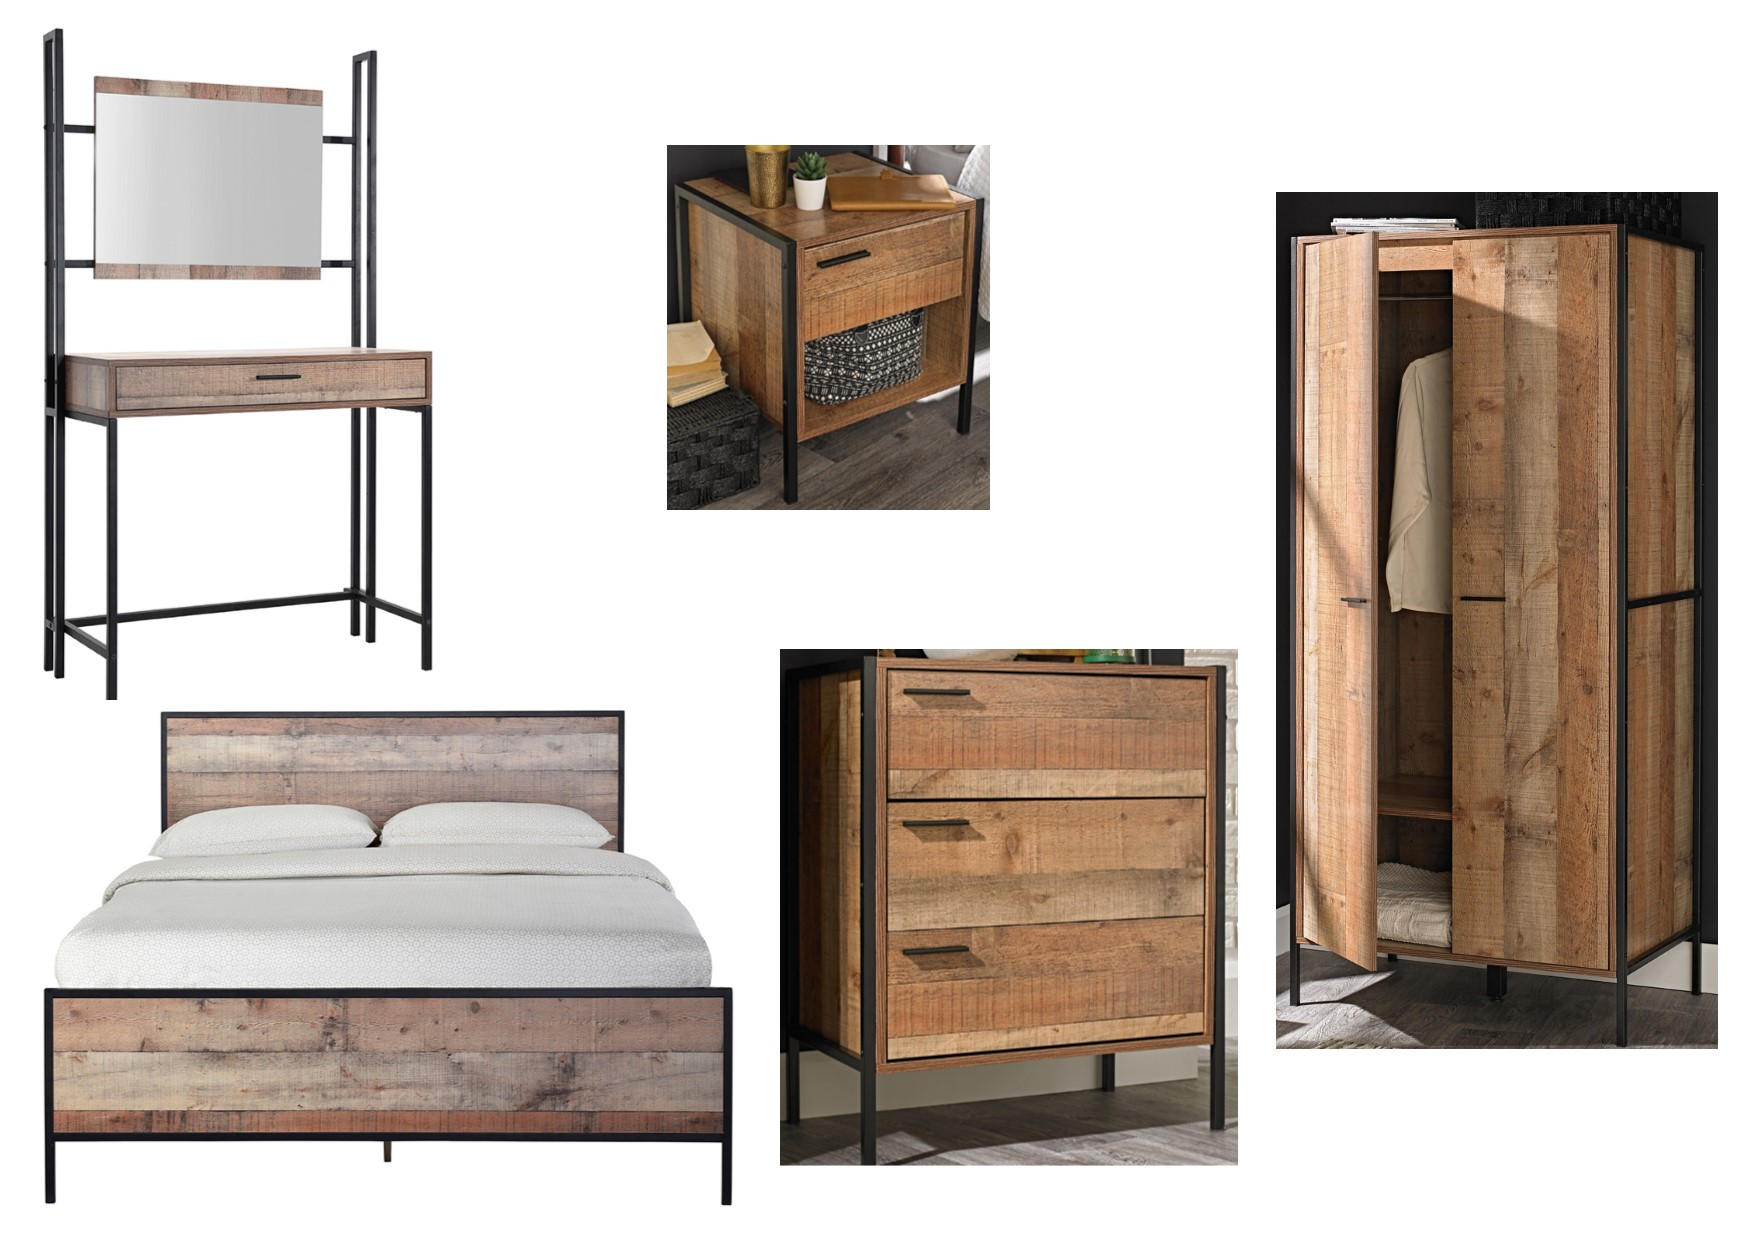 Hoxton Urban Rustic Bedroom Furniture Metal Frames Bedside